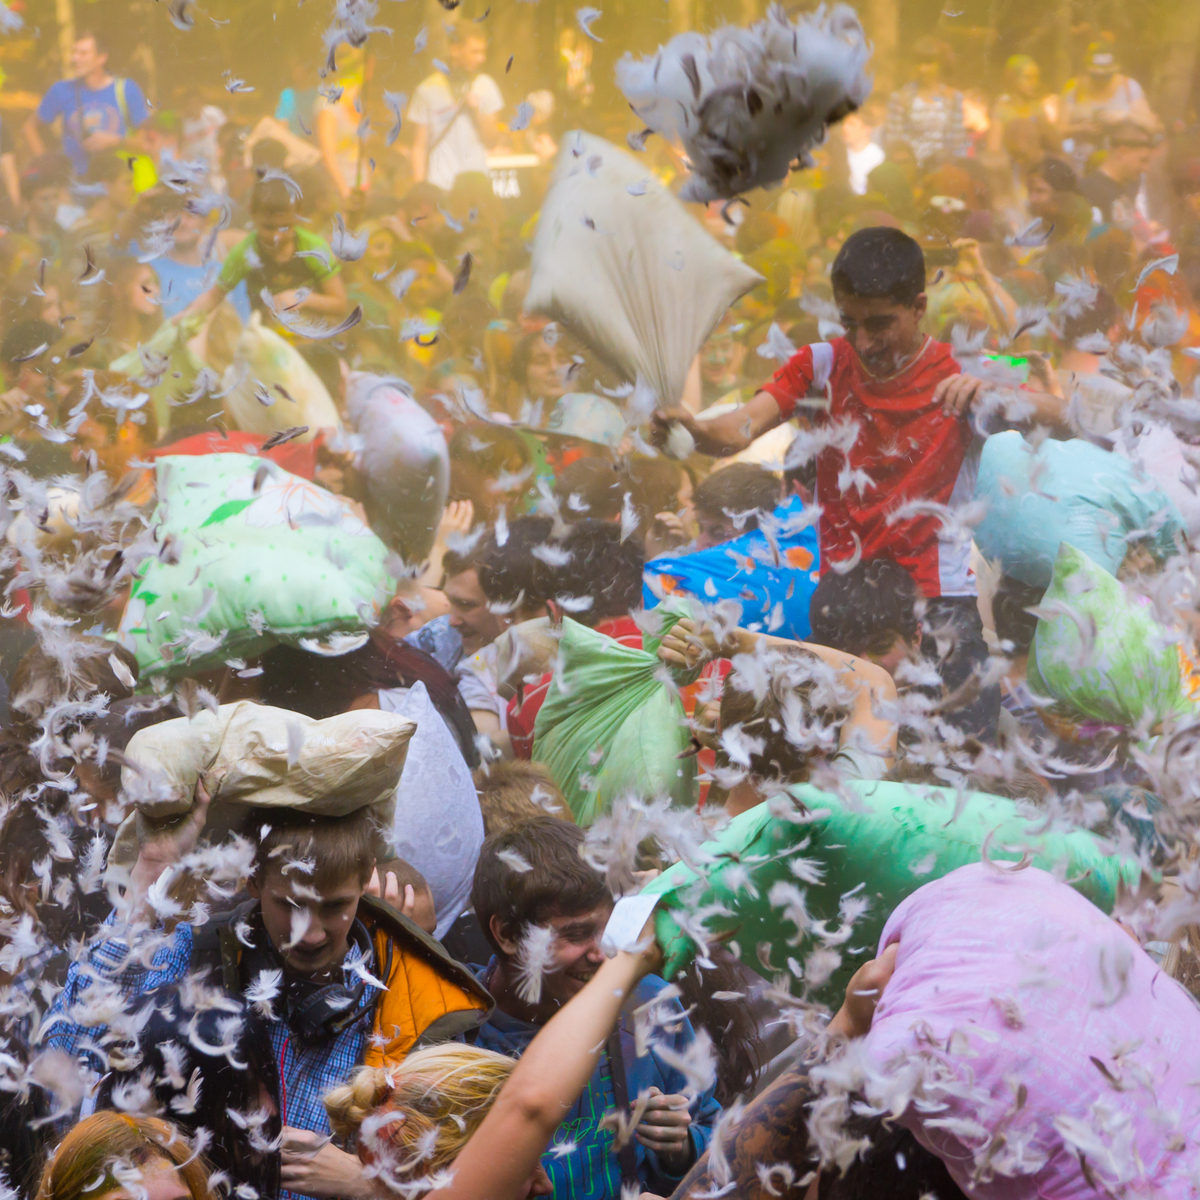 #PillowFIghtDay